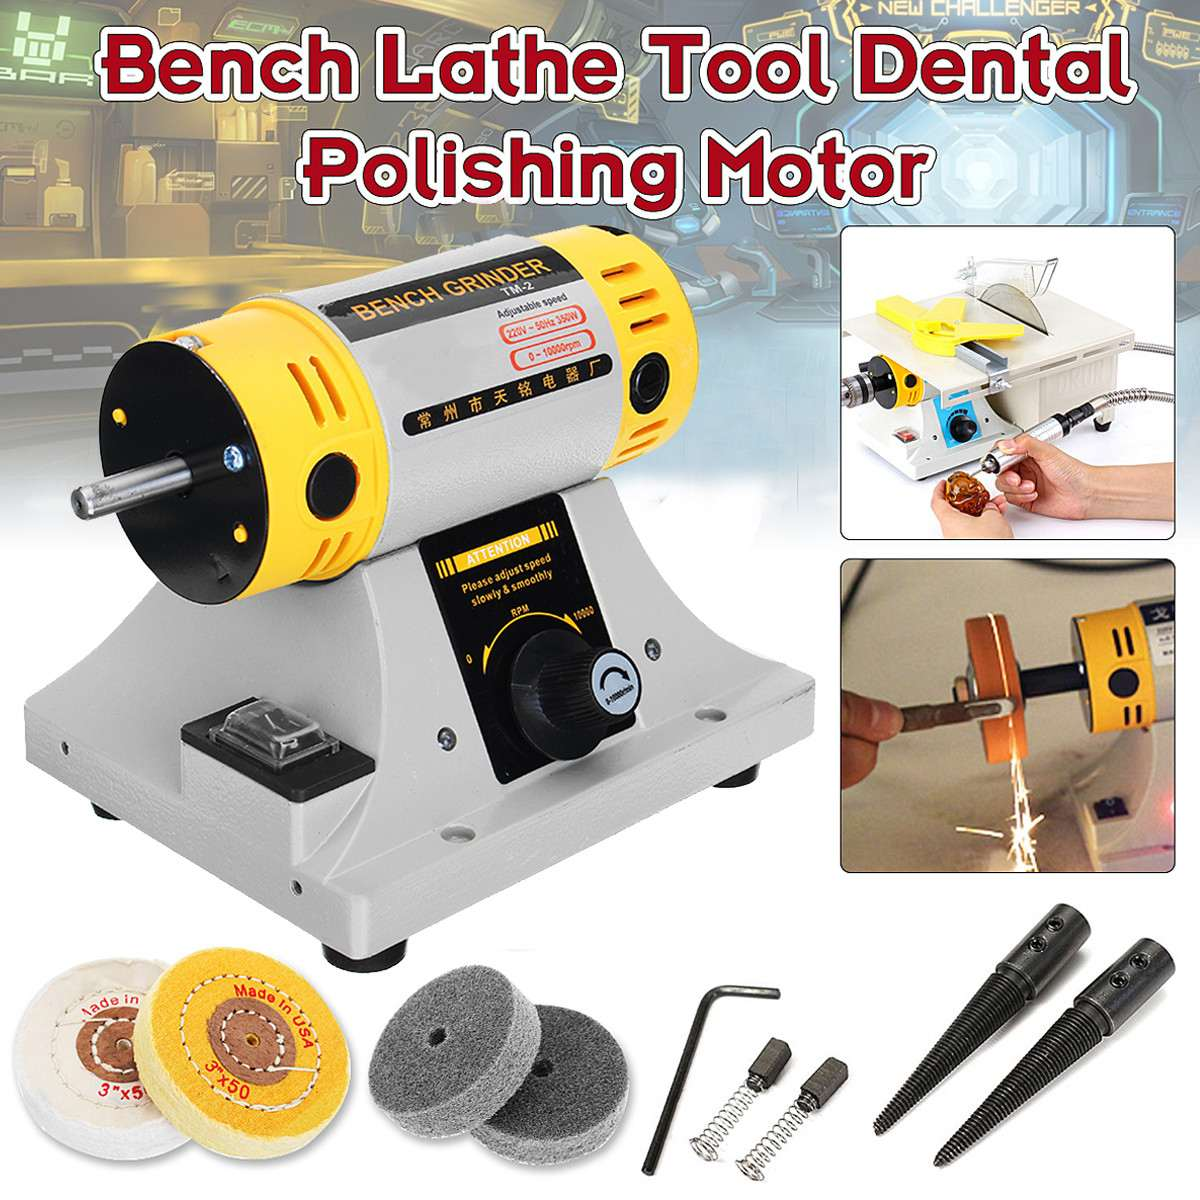 New 350W 220V Multi-purpose Mini Bench Grinder Polishing Machine Kit For Jewelry Dental Motor Lathe Bench Grinder Kit Set